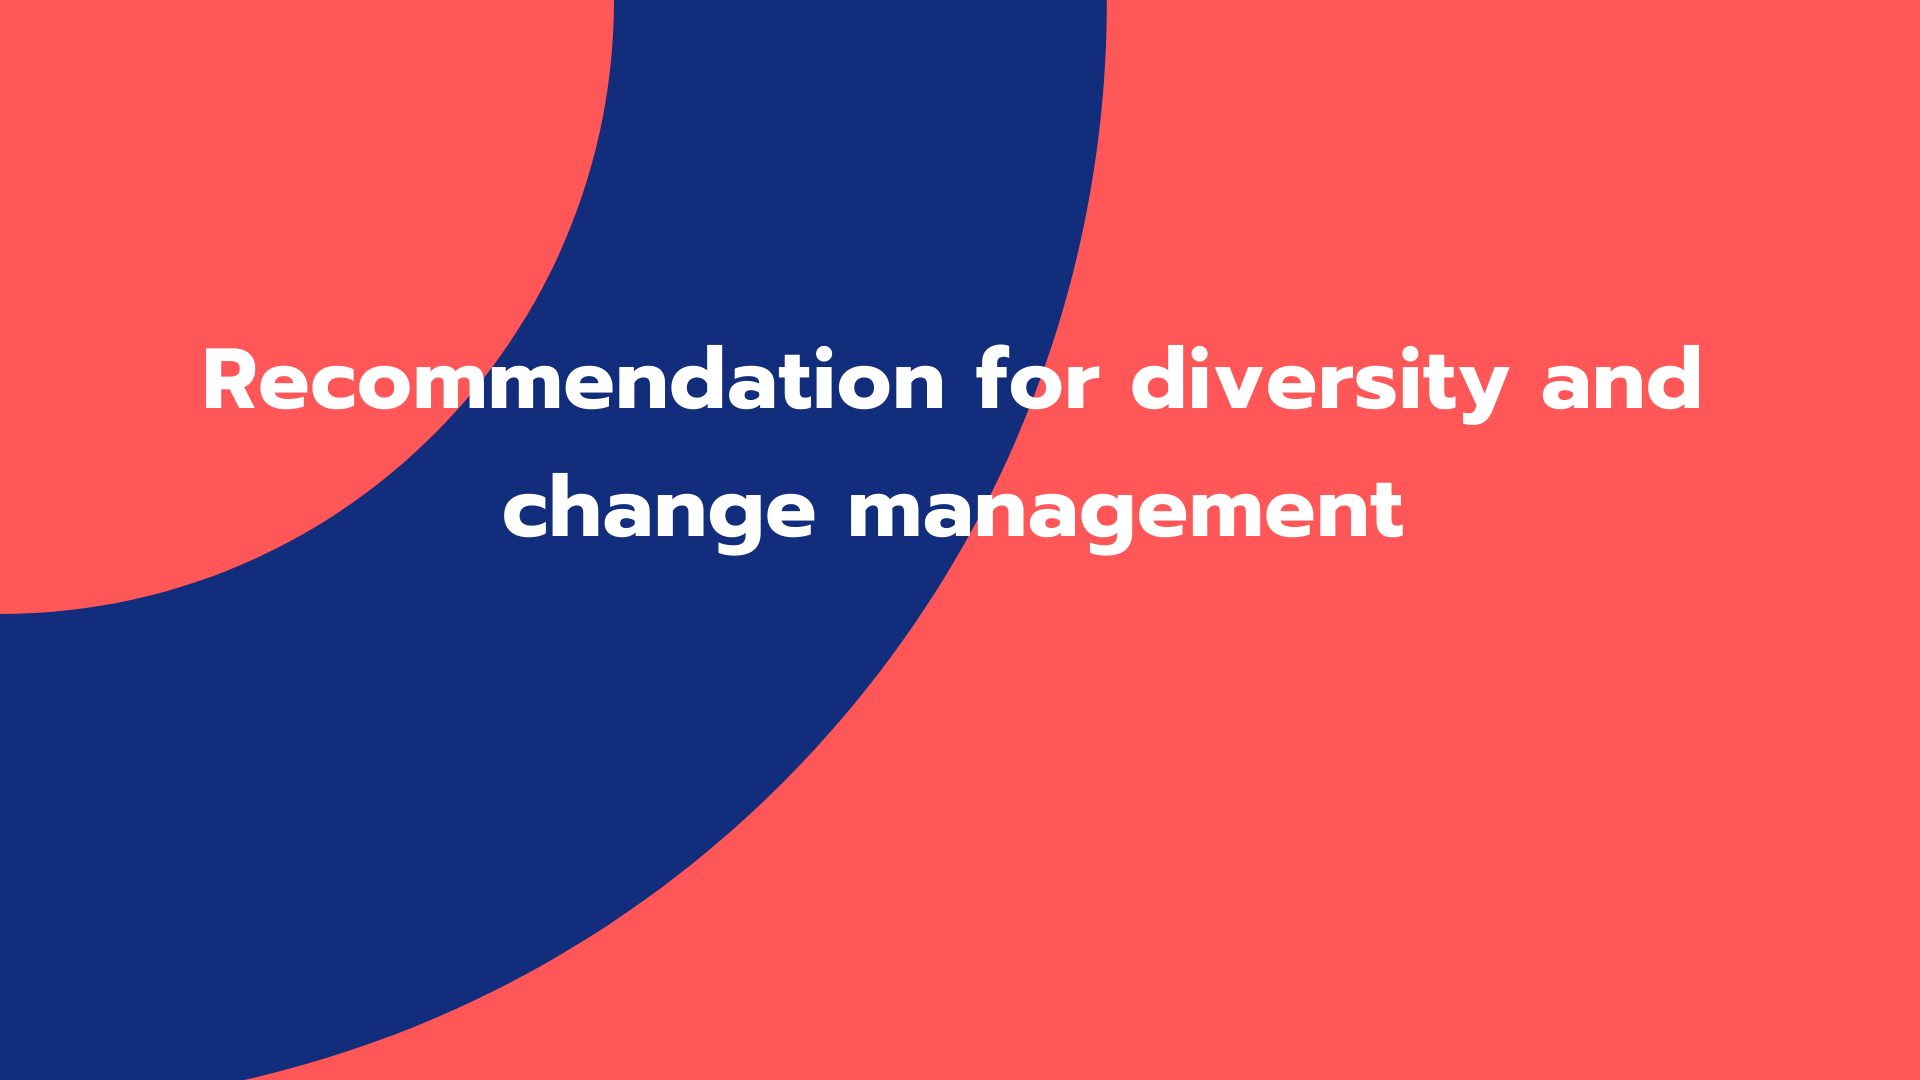 Recommendation for diversity and change management